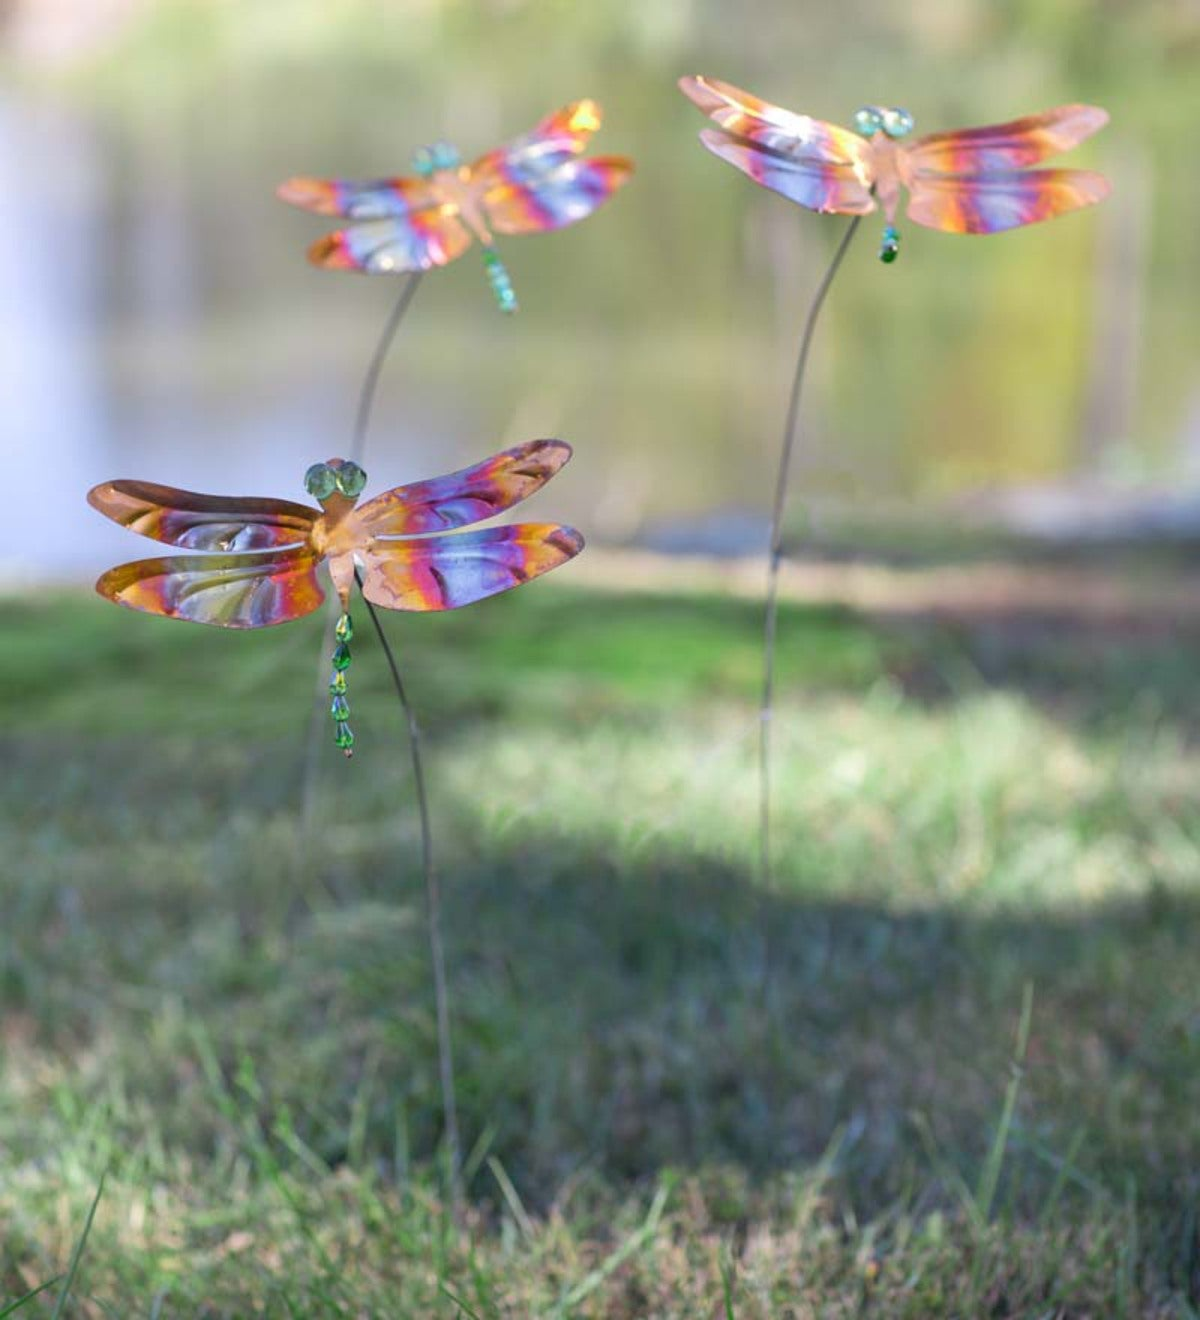 Handcrafted Copper Dragonfly Garden Stake